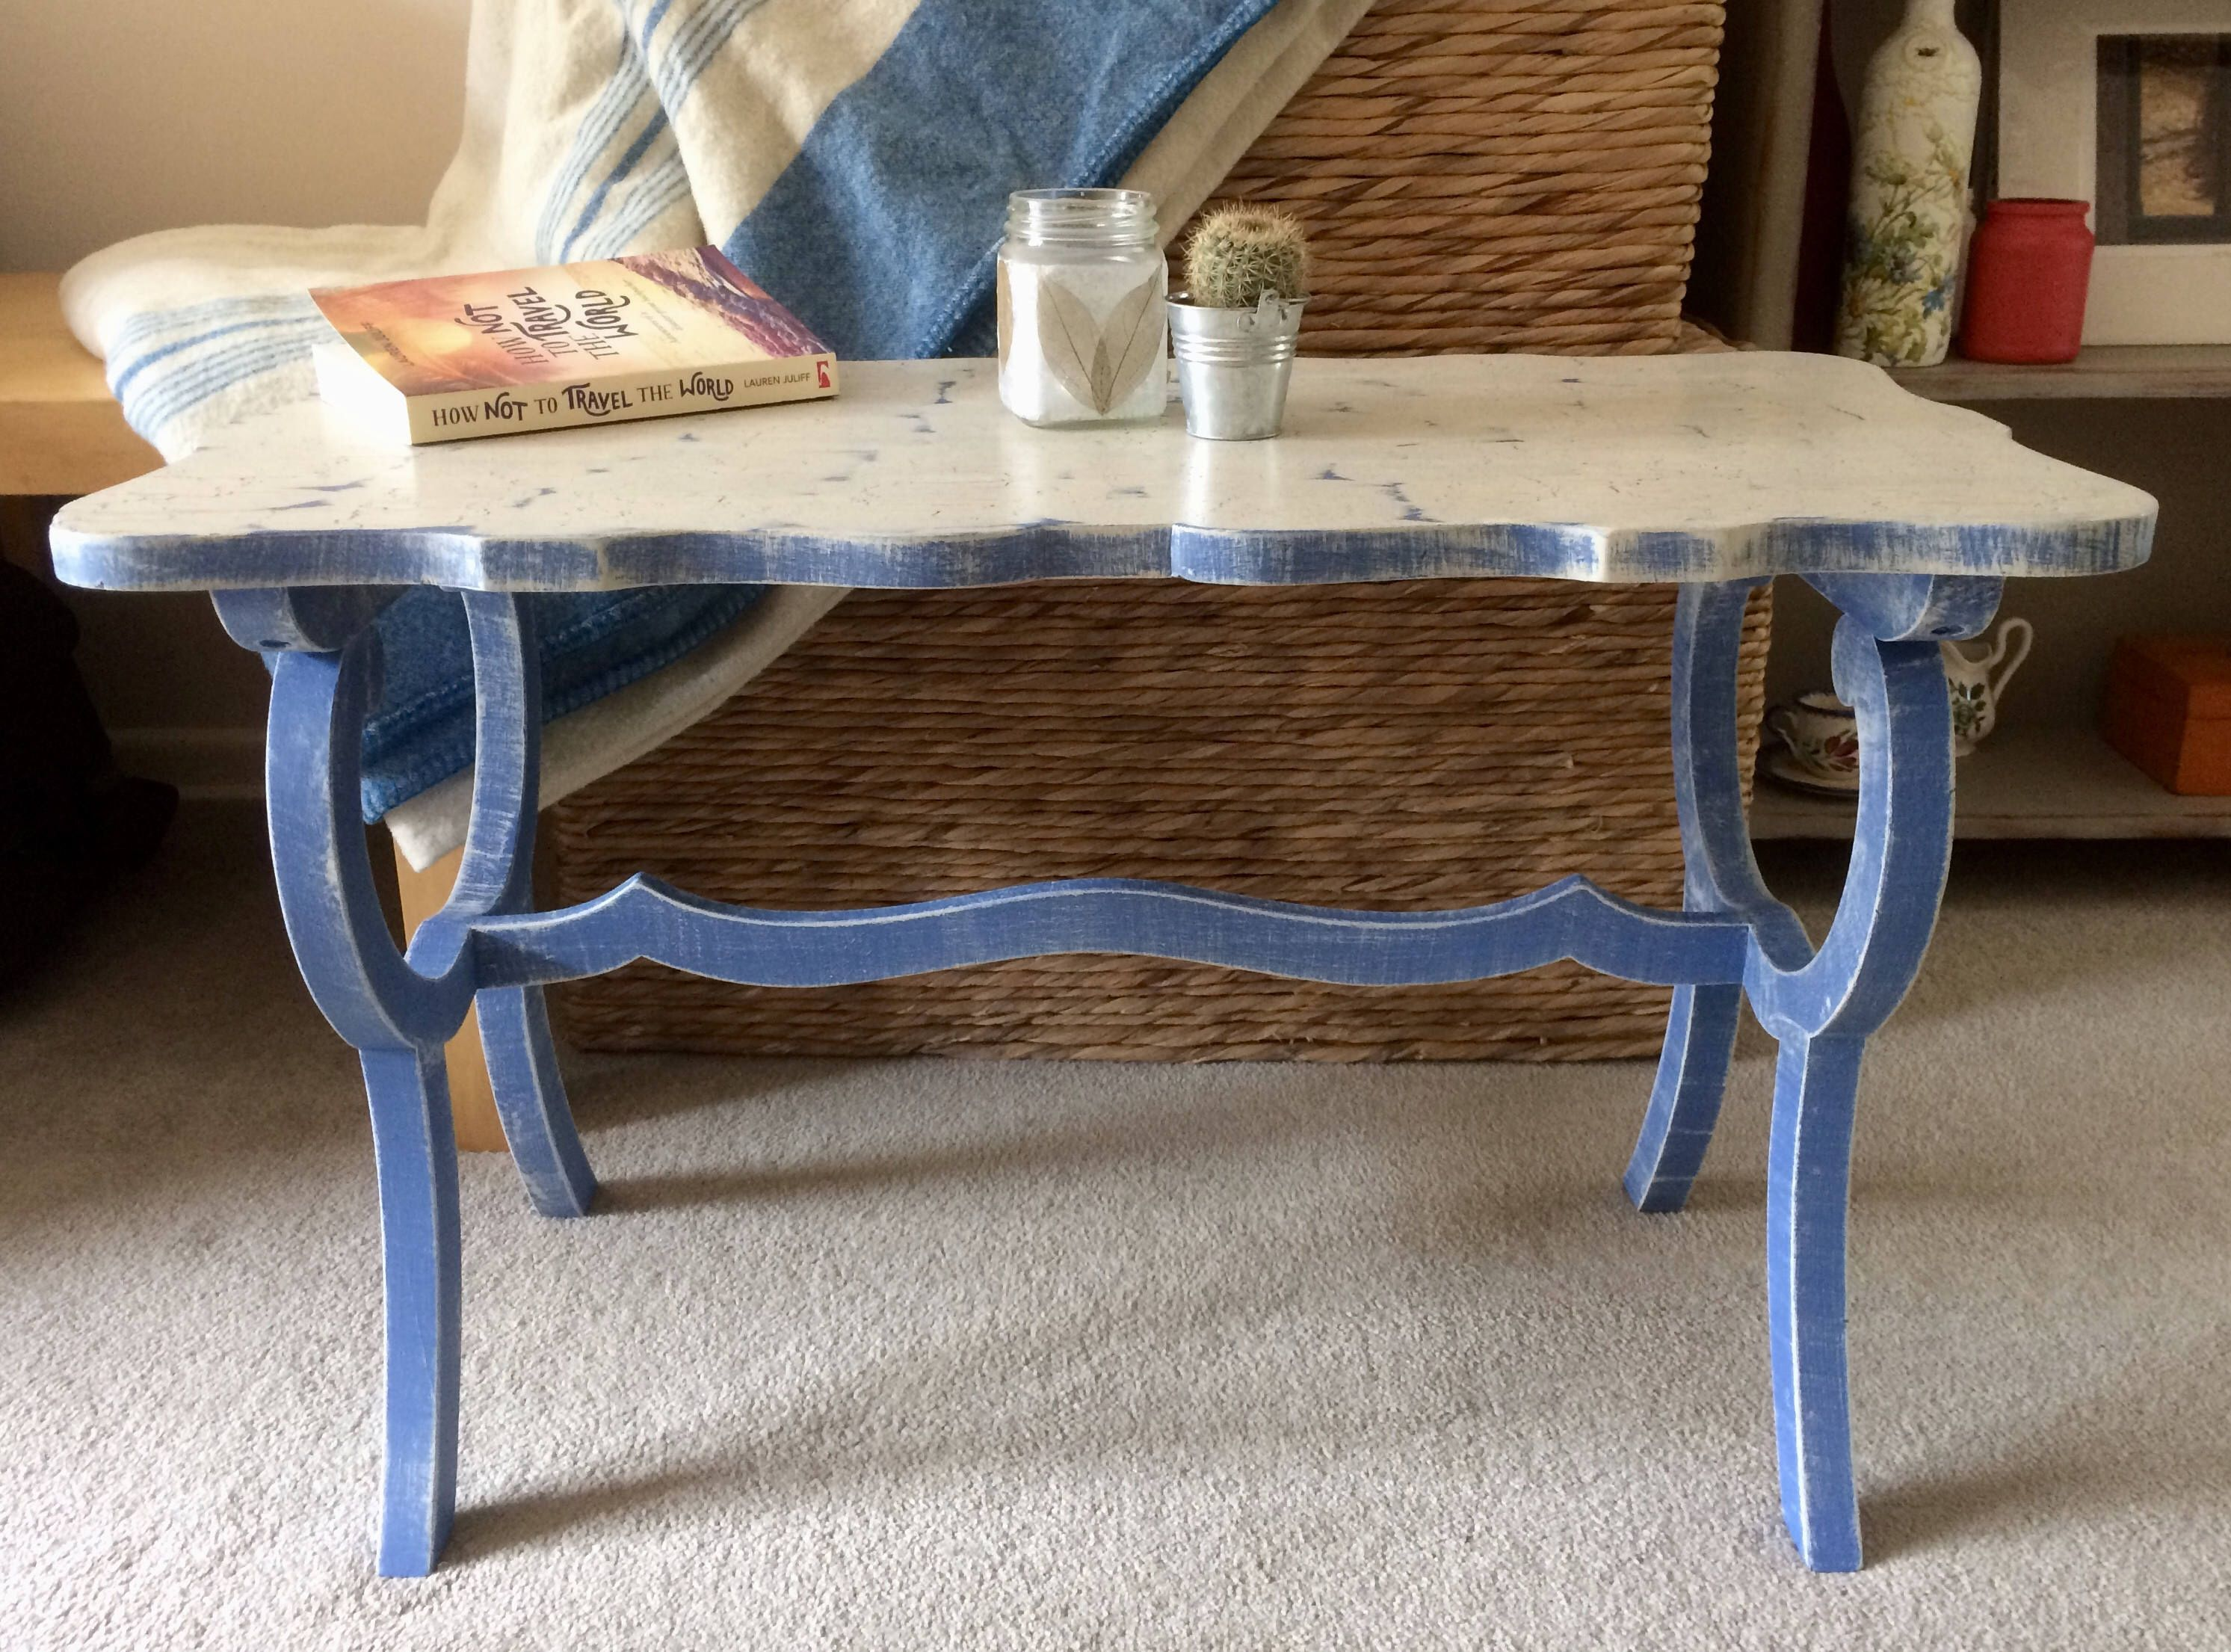 Small Vintage Coffee Side Table Restyled And Hand Painted In A Rustic Blue And White Coastal Style Coffee Table Unique Coffee Table Decor